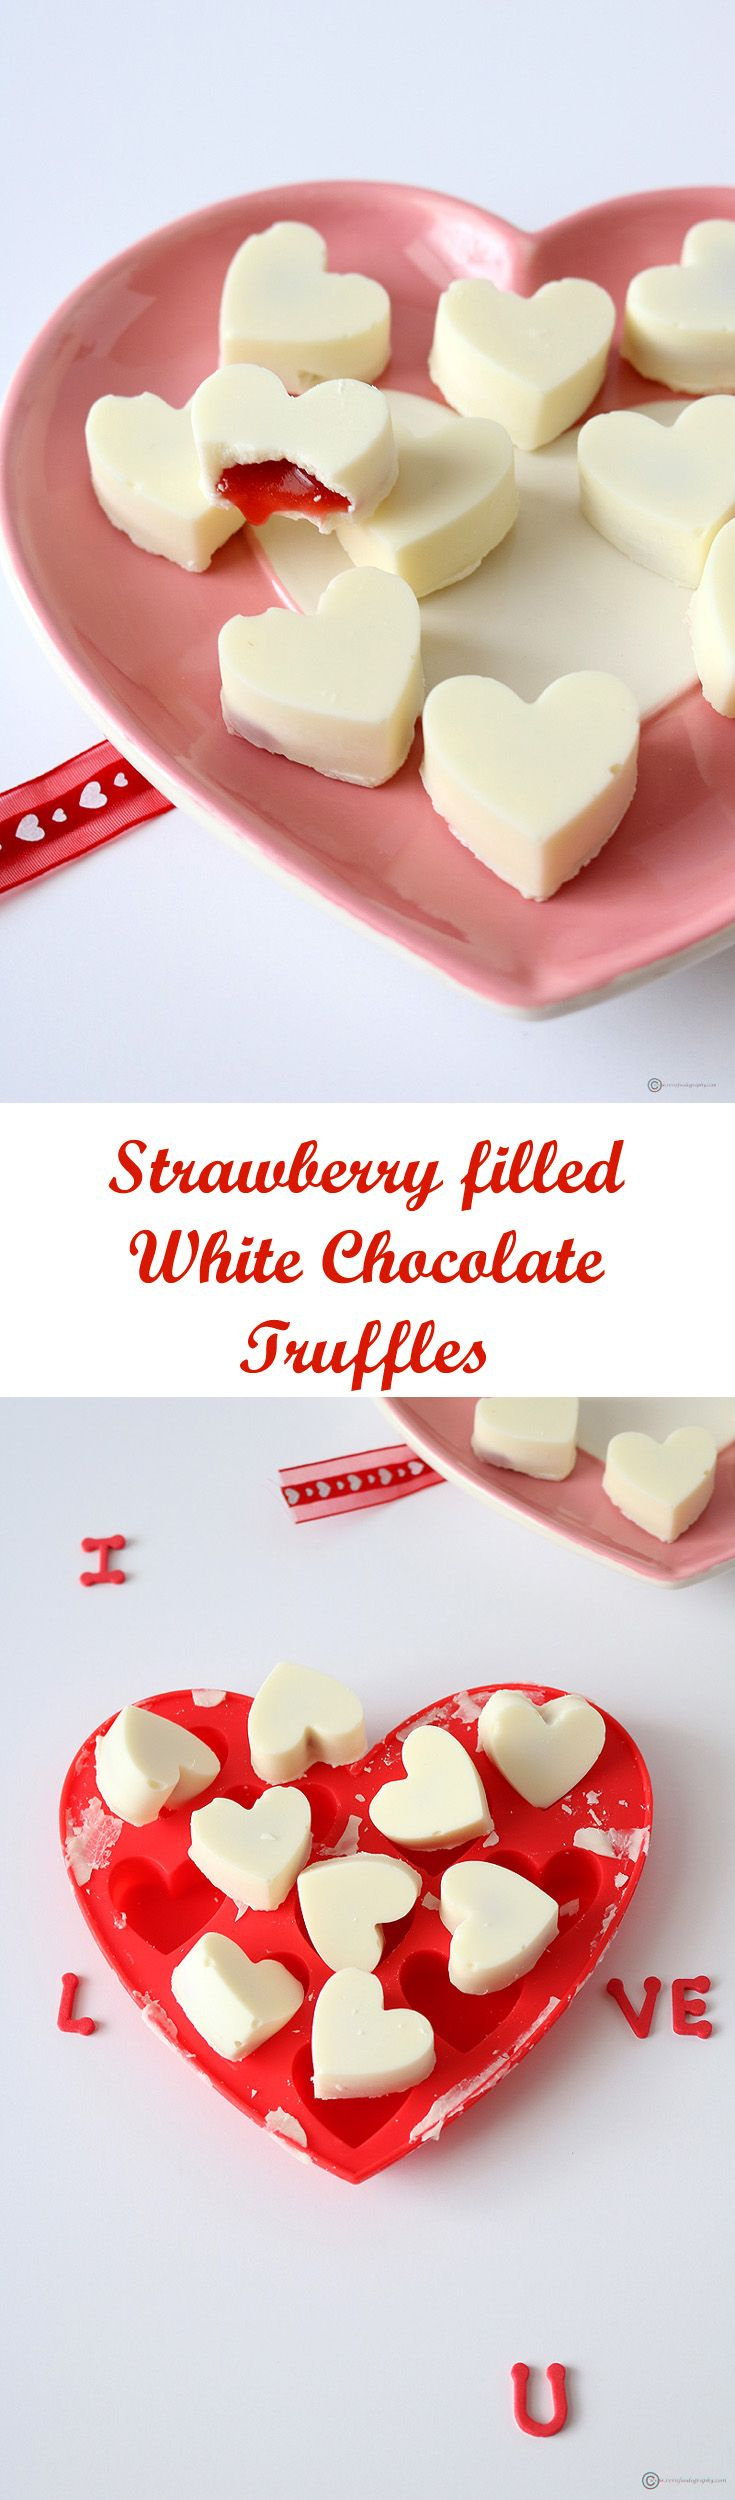 My special Valentine's day treat. Tangy, sweet and jam like strawberry filling in mini heart shaped white chocolate truffles.